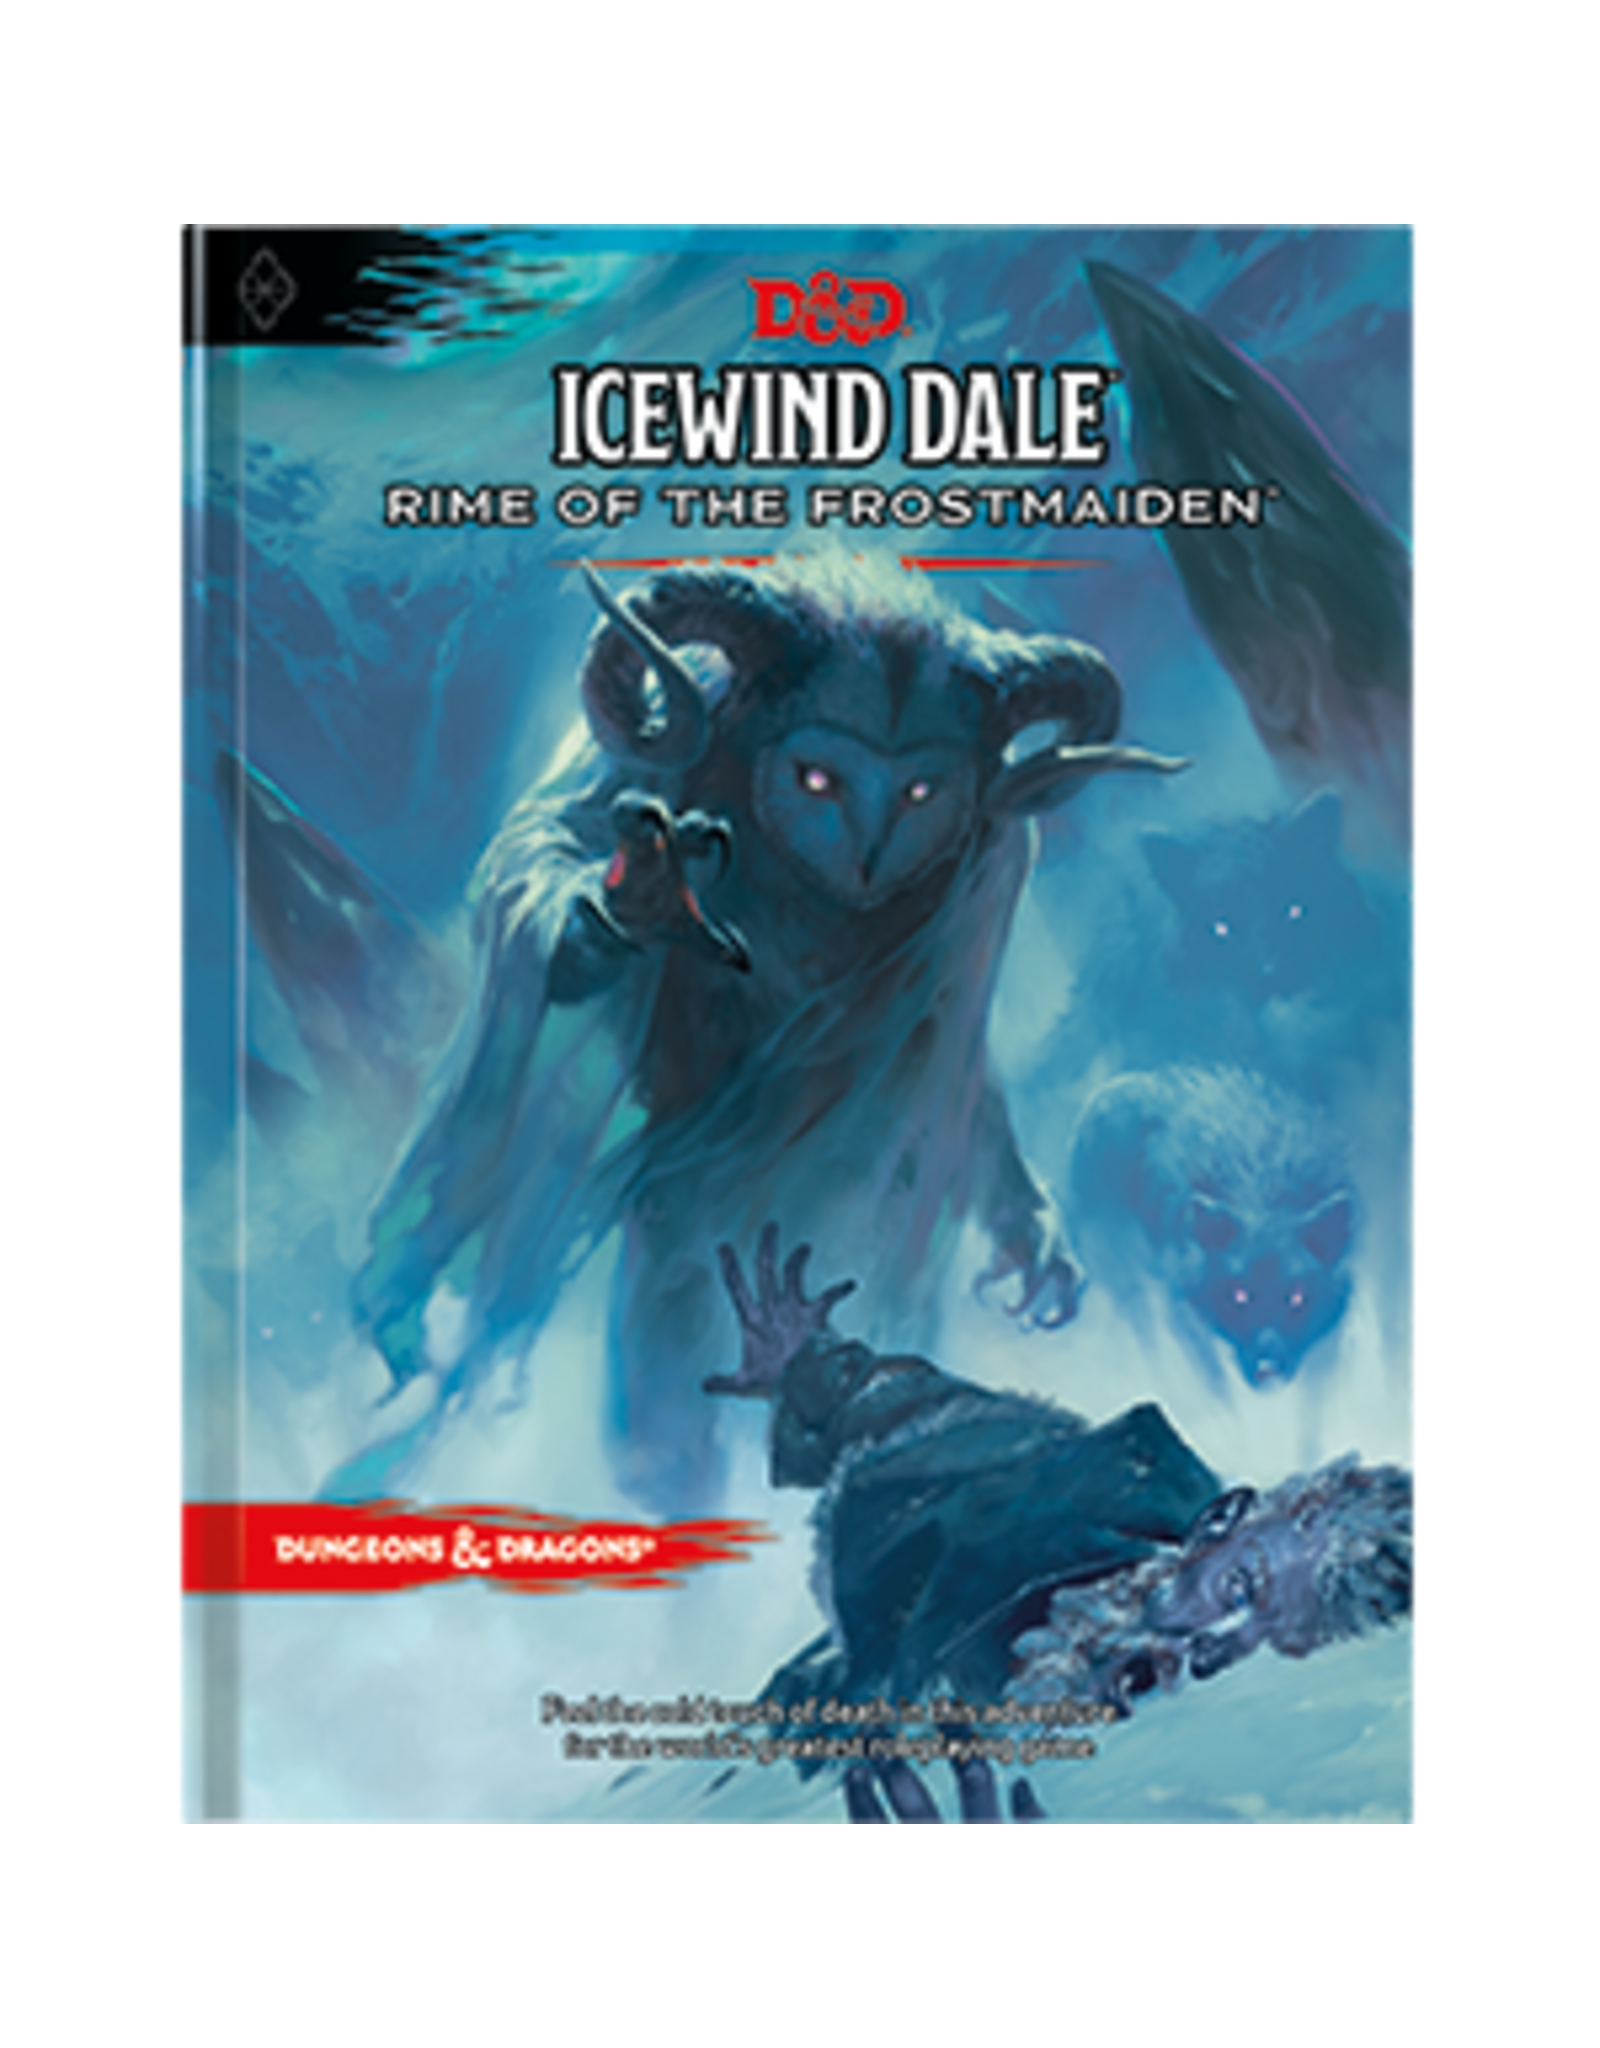 Dungeon & Dragons: Icewind Dale - Rime of the Frostmaiden